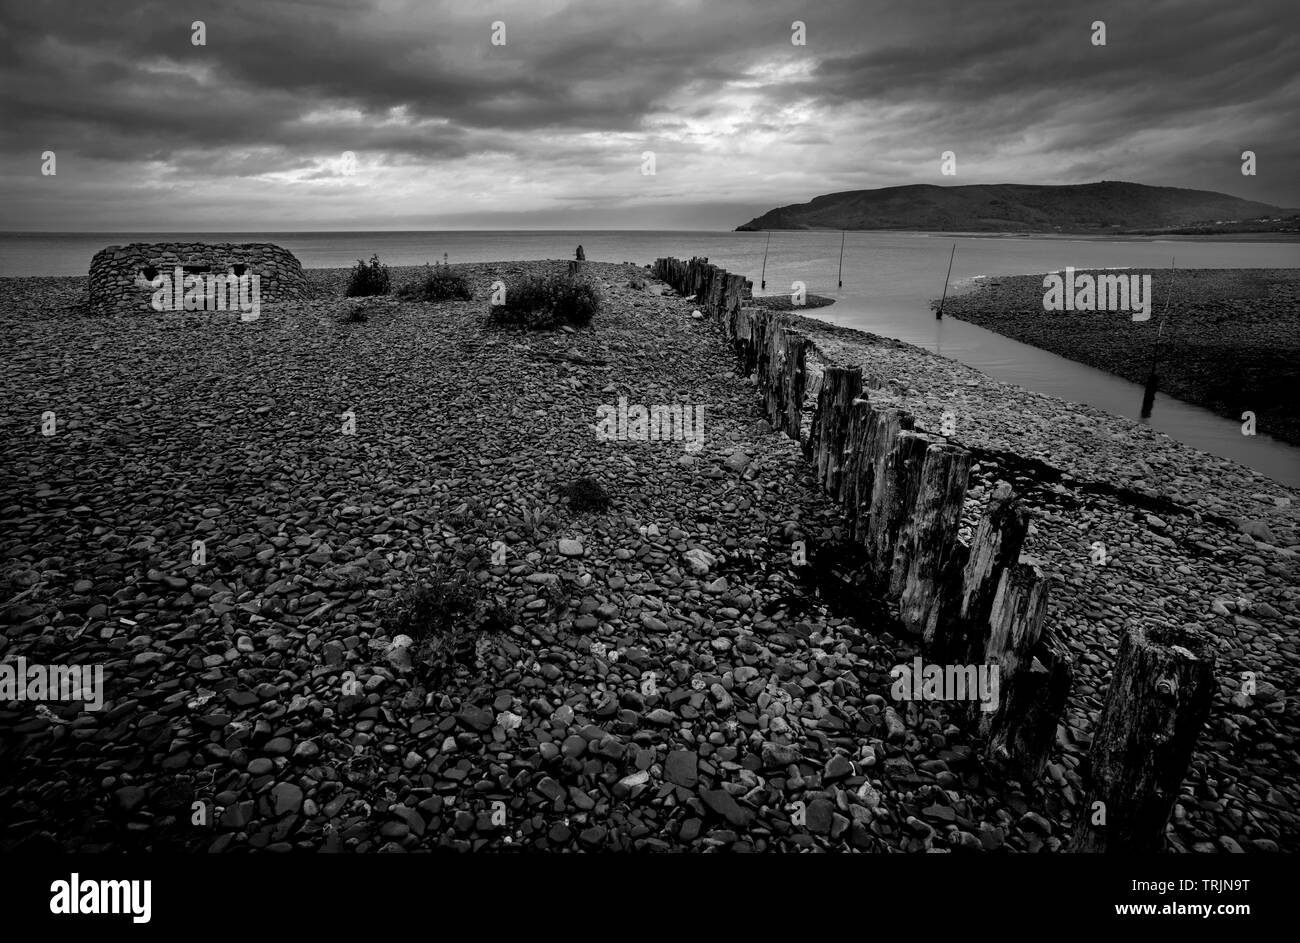 Porlock Weir Exmoor Somerset England UK June 2019 Porlock Weir, about 1.5 miles west of the inland village of Porlock, Somerset, England, is a small s Stock Photo